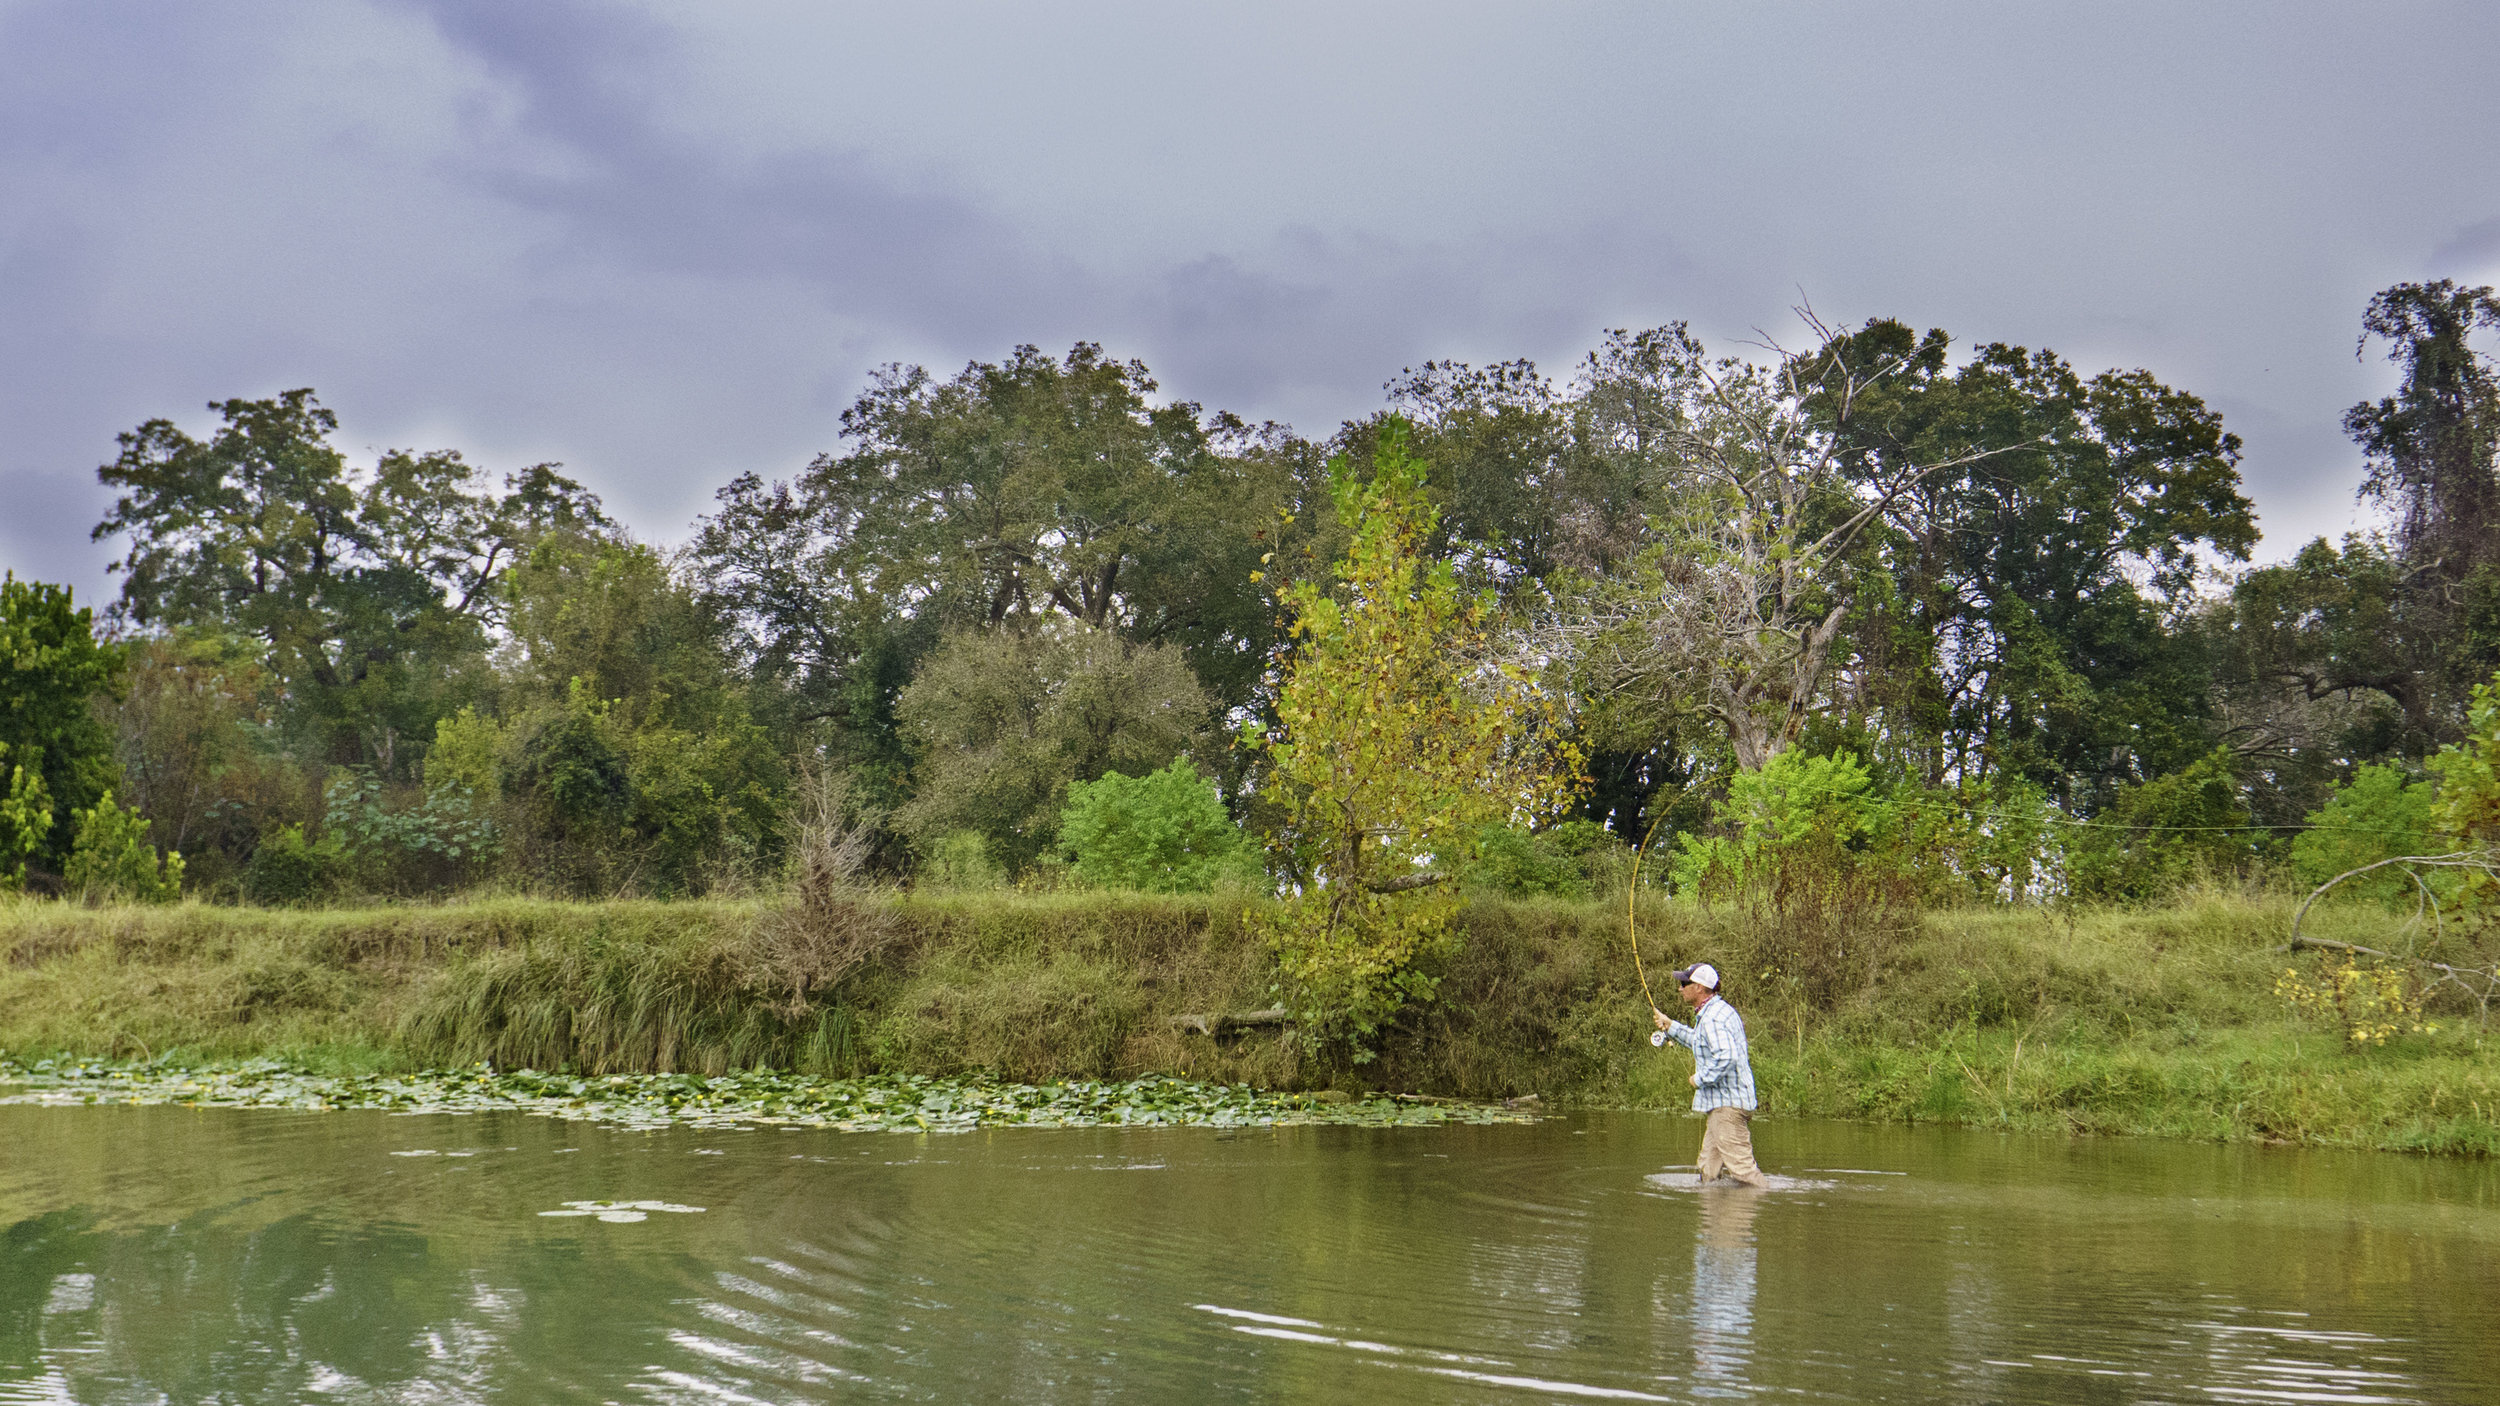 Wade fishing on the San Marcos River